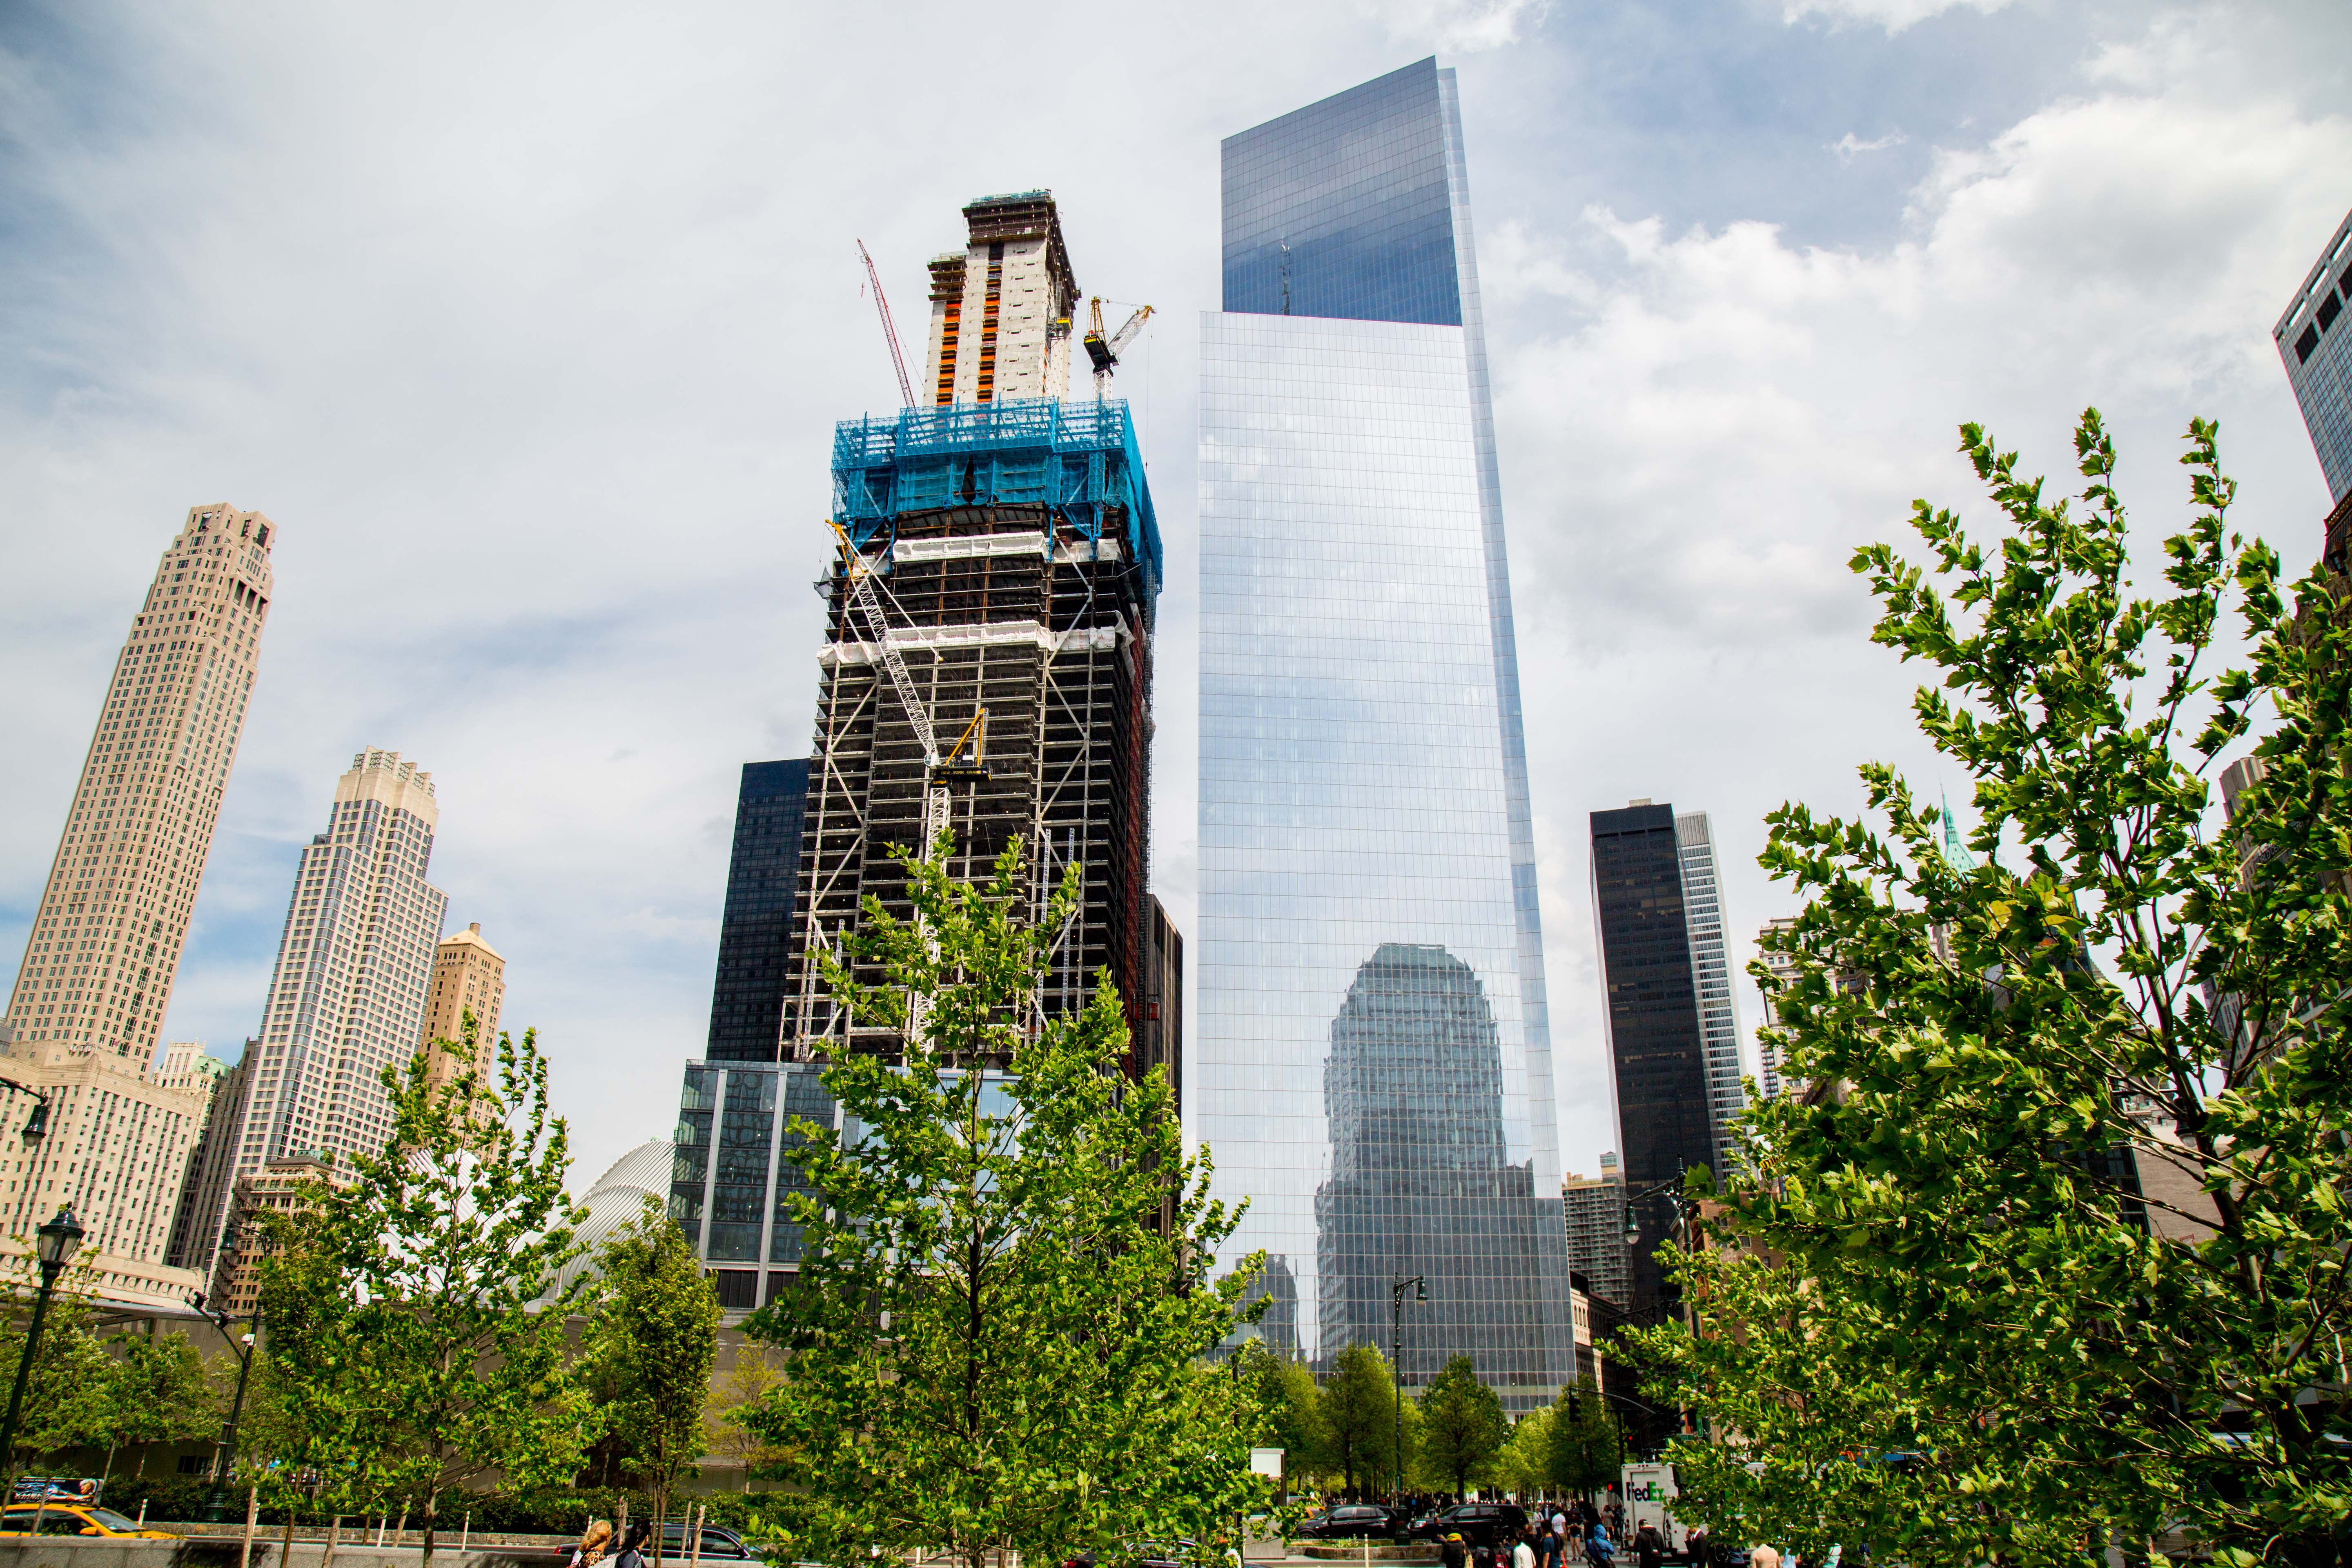 Skyscraper at Trade Center Rises From the Inside Out